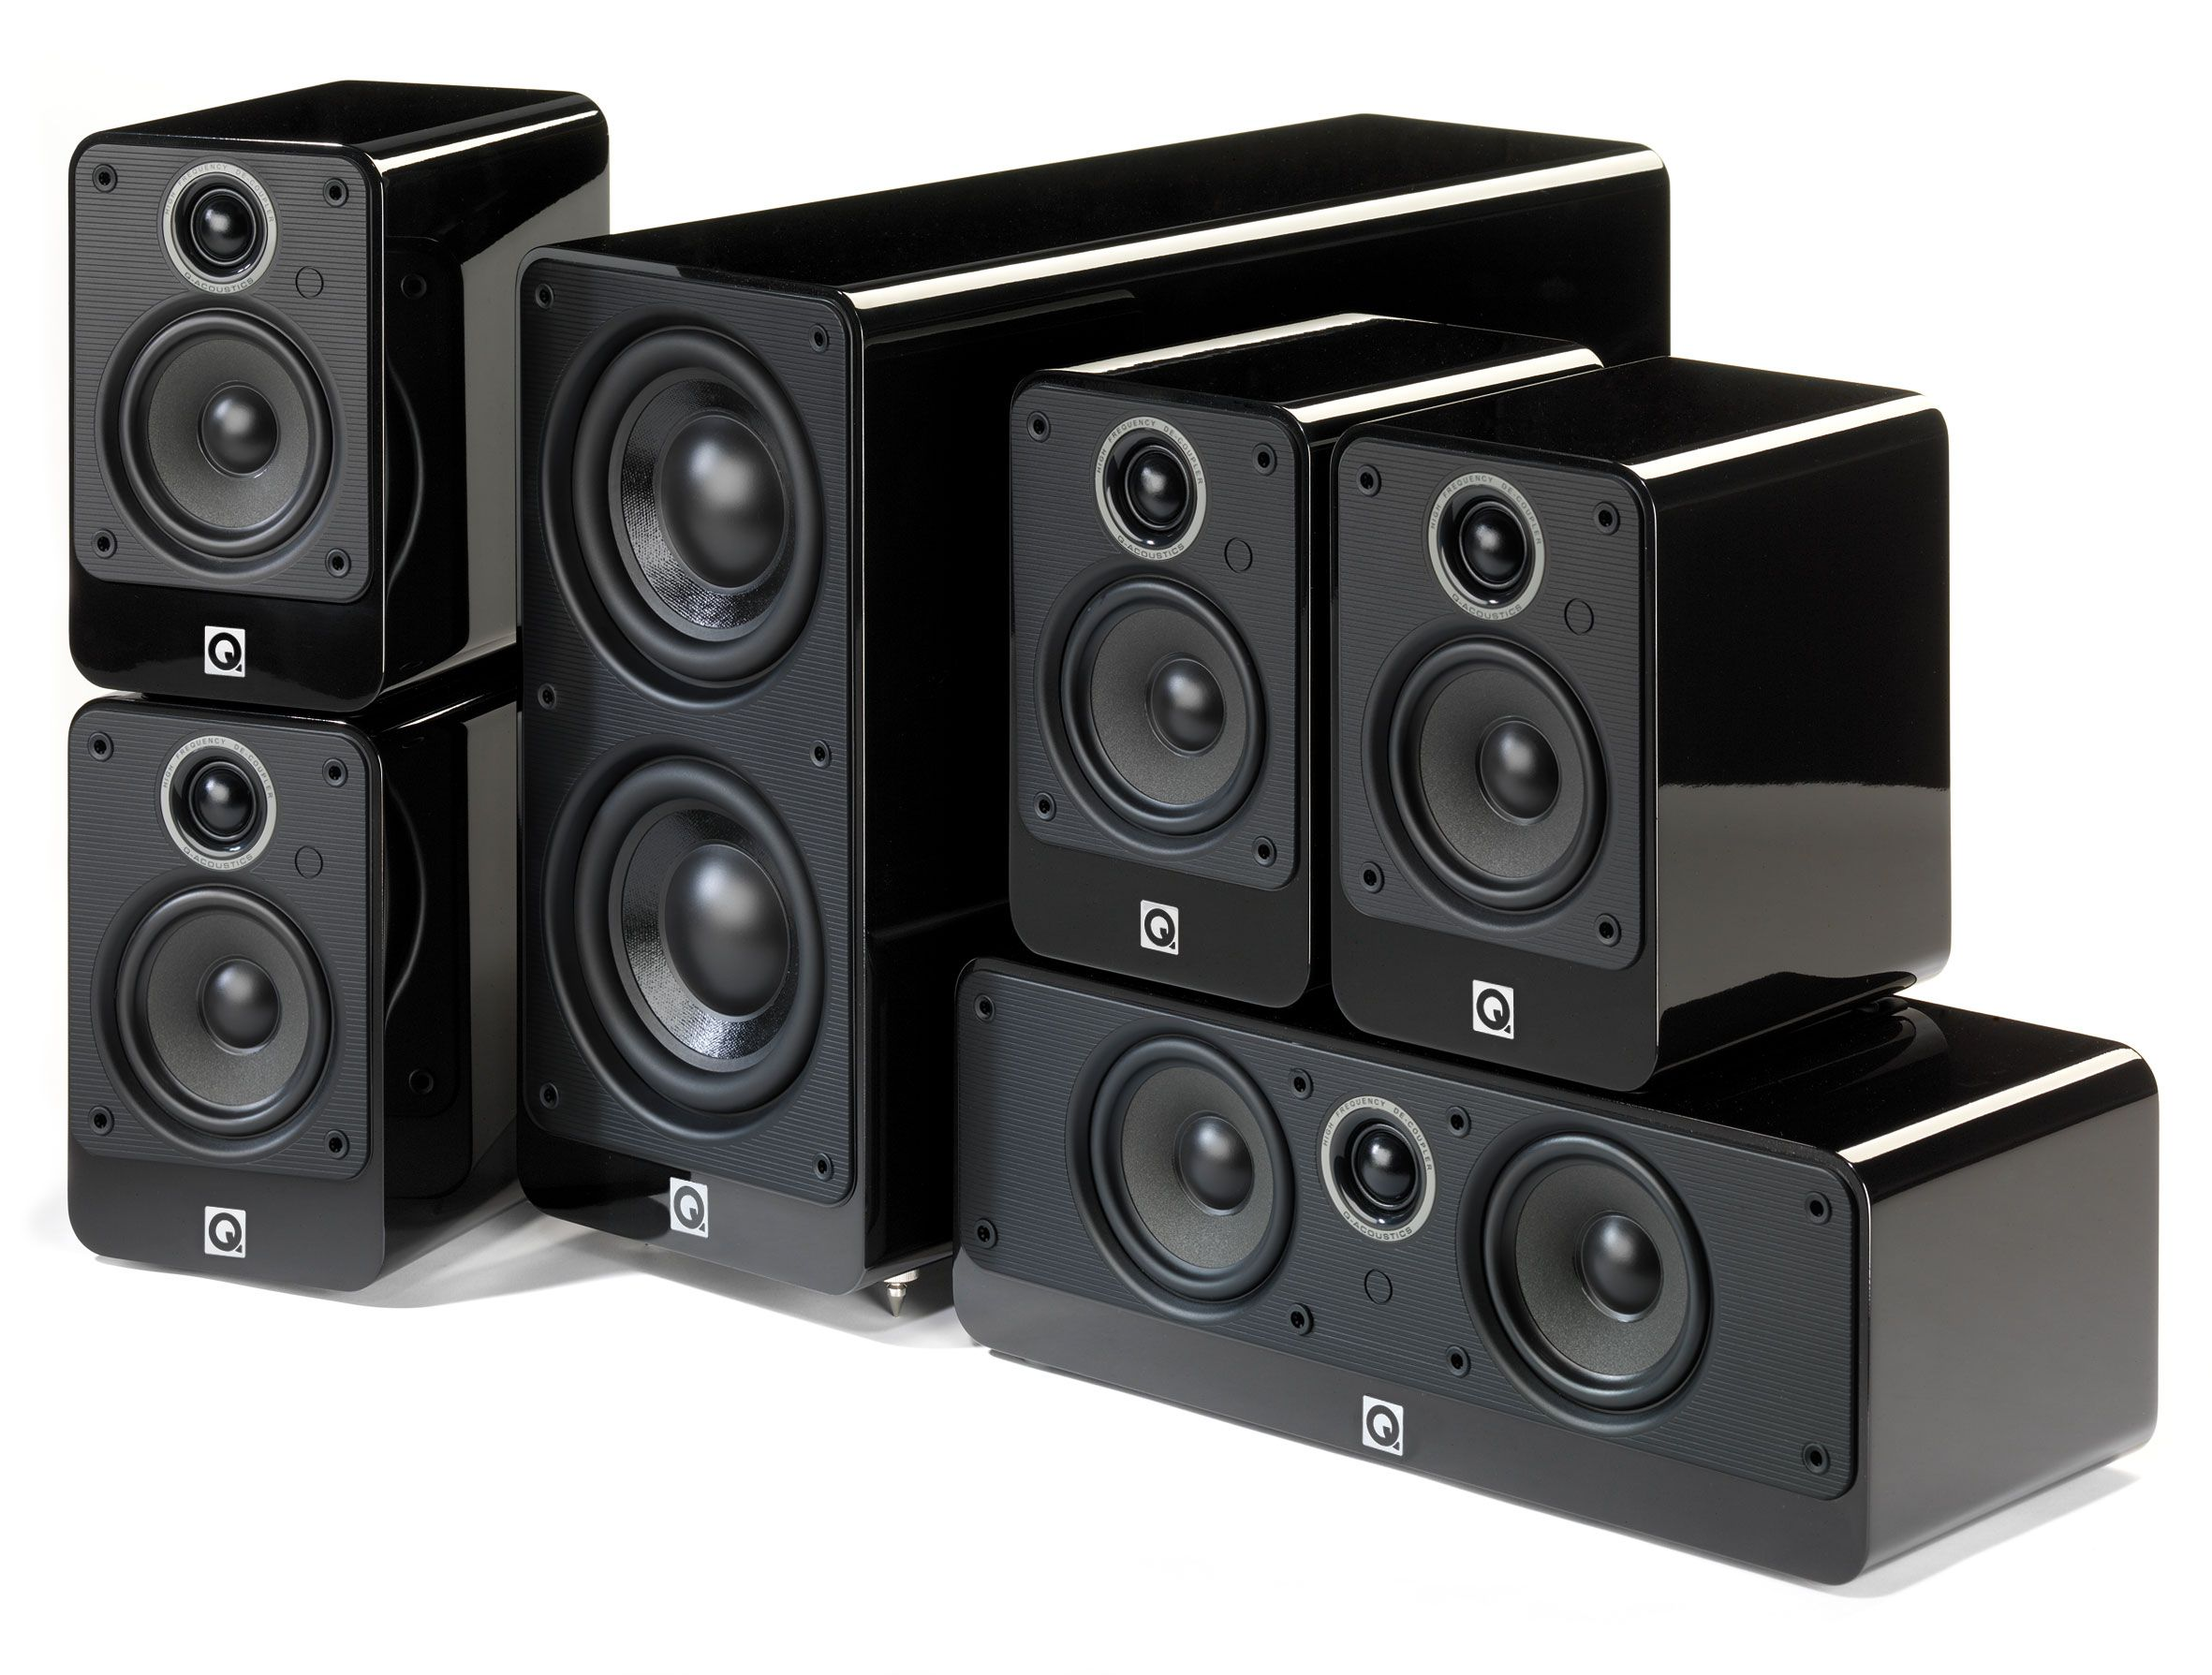 The Q Acoustics 2000i series 5.1 Home Cinema Speaker